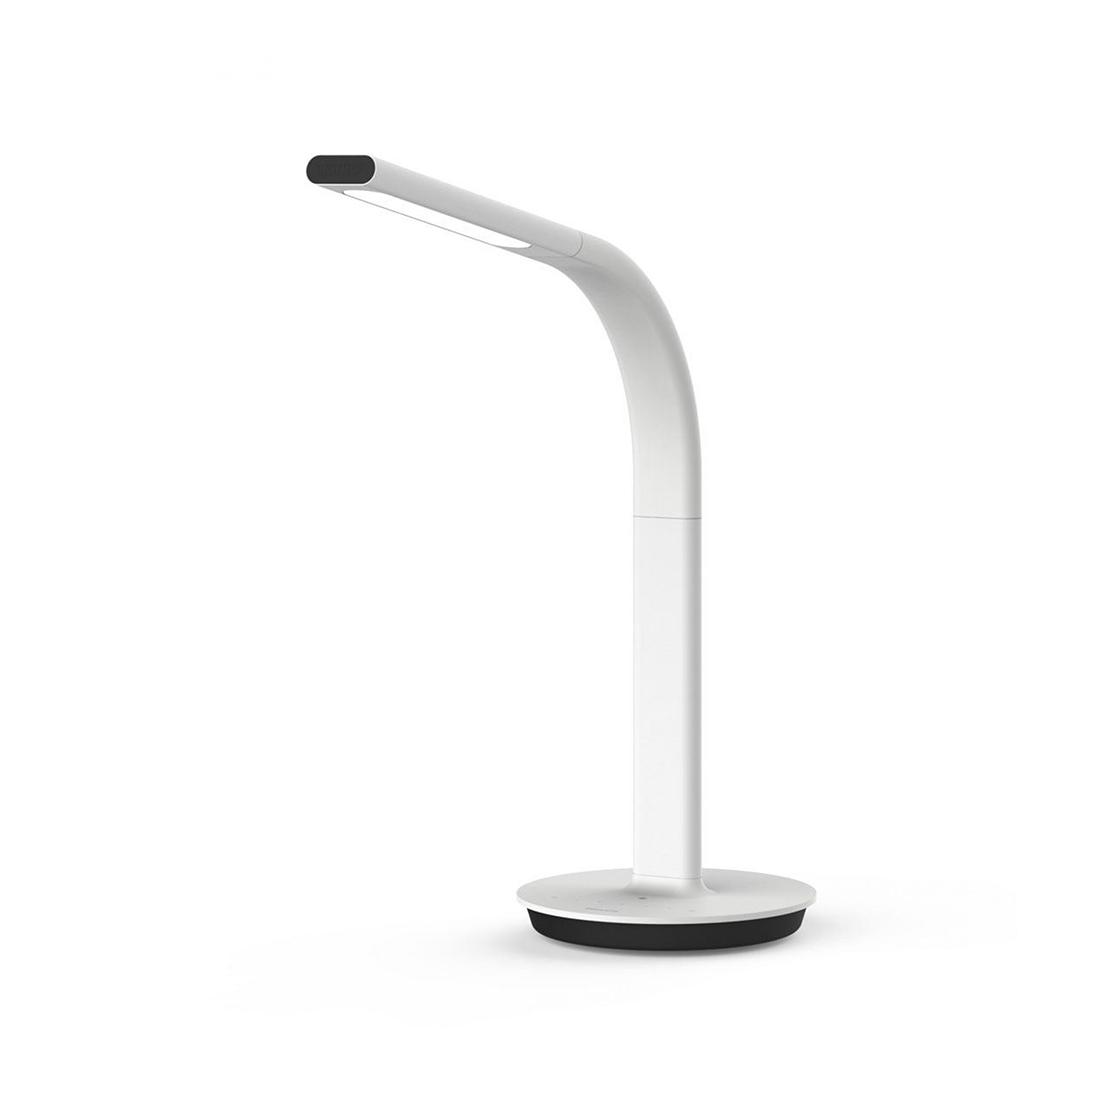 Лампа настольная Xiaomi Philips Eyecare Smart Lamp 2: Фото 1